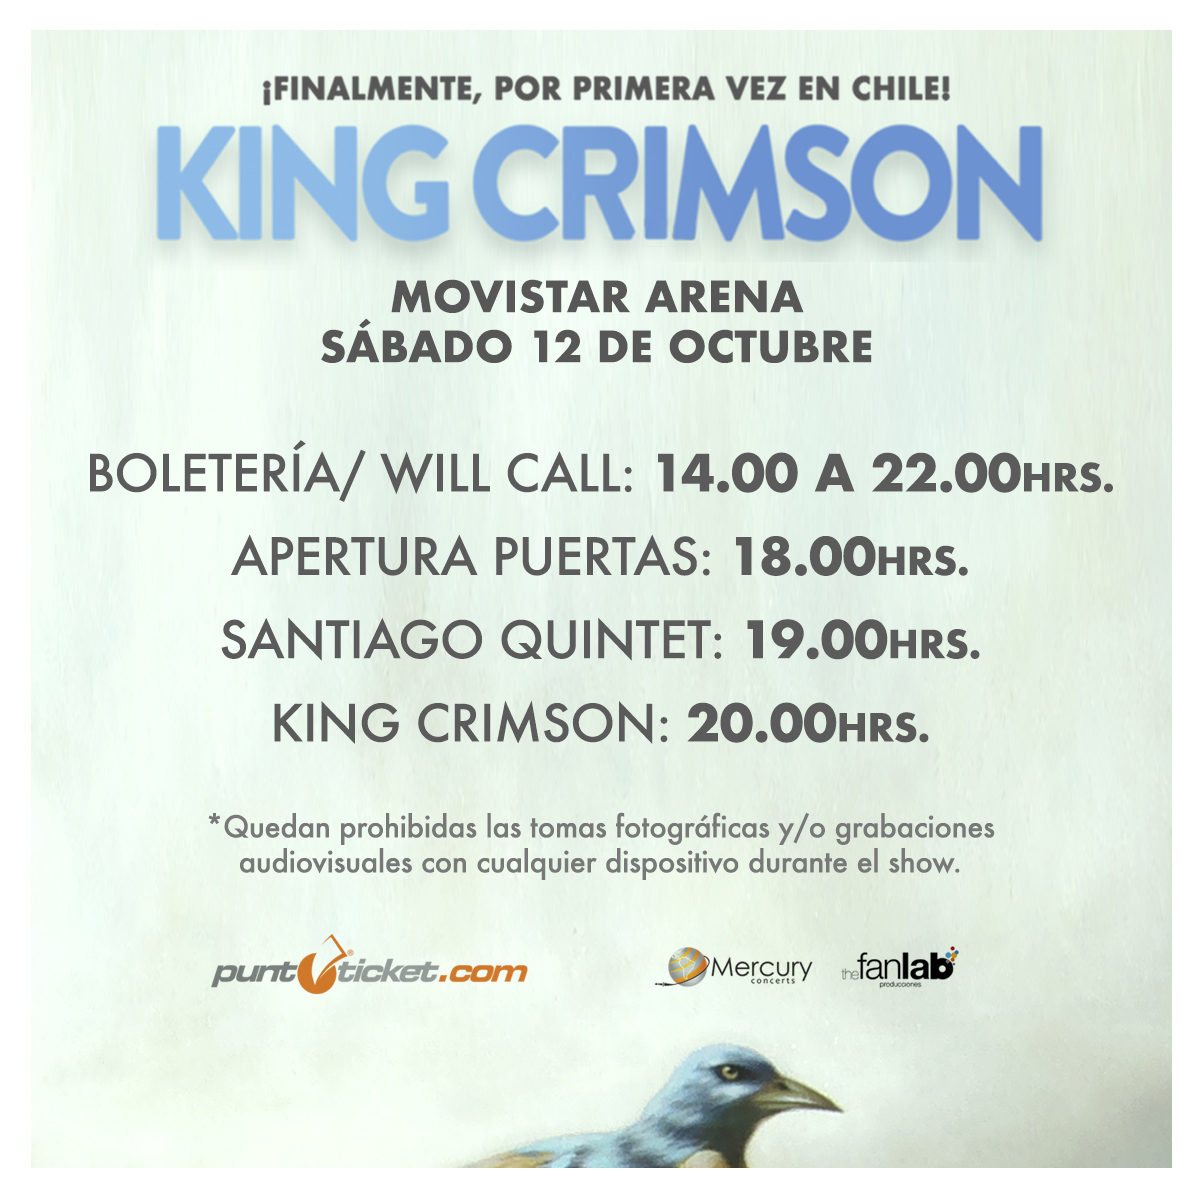 King Crimson en Chile: horarios, recomendaciones e información general